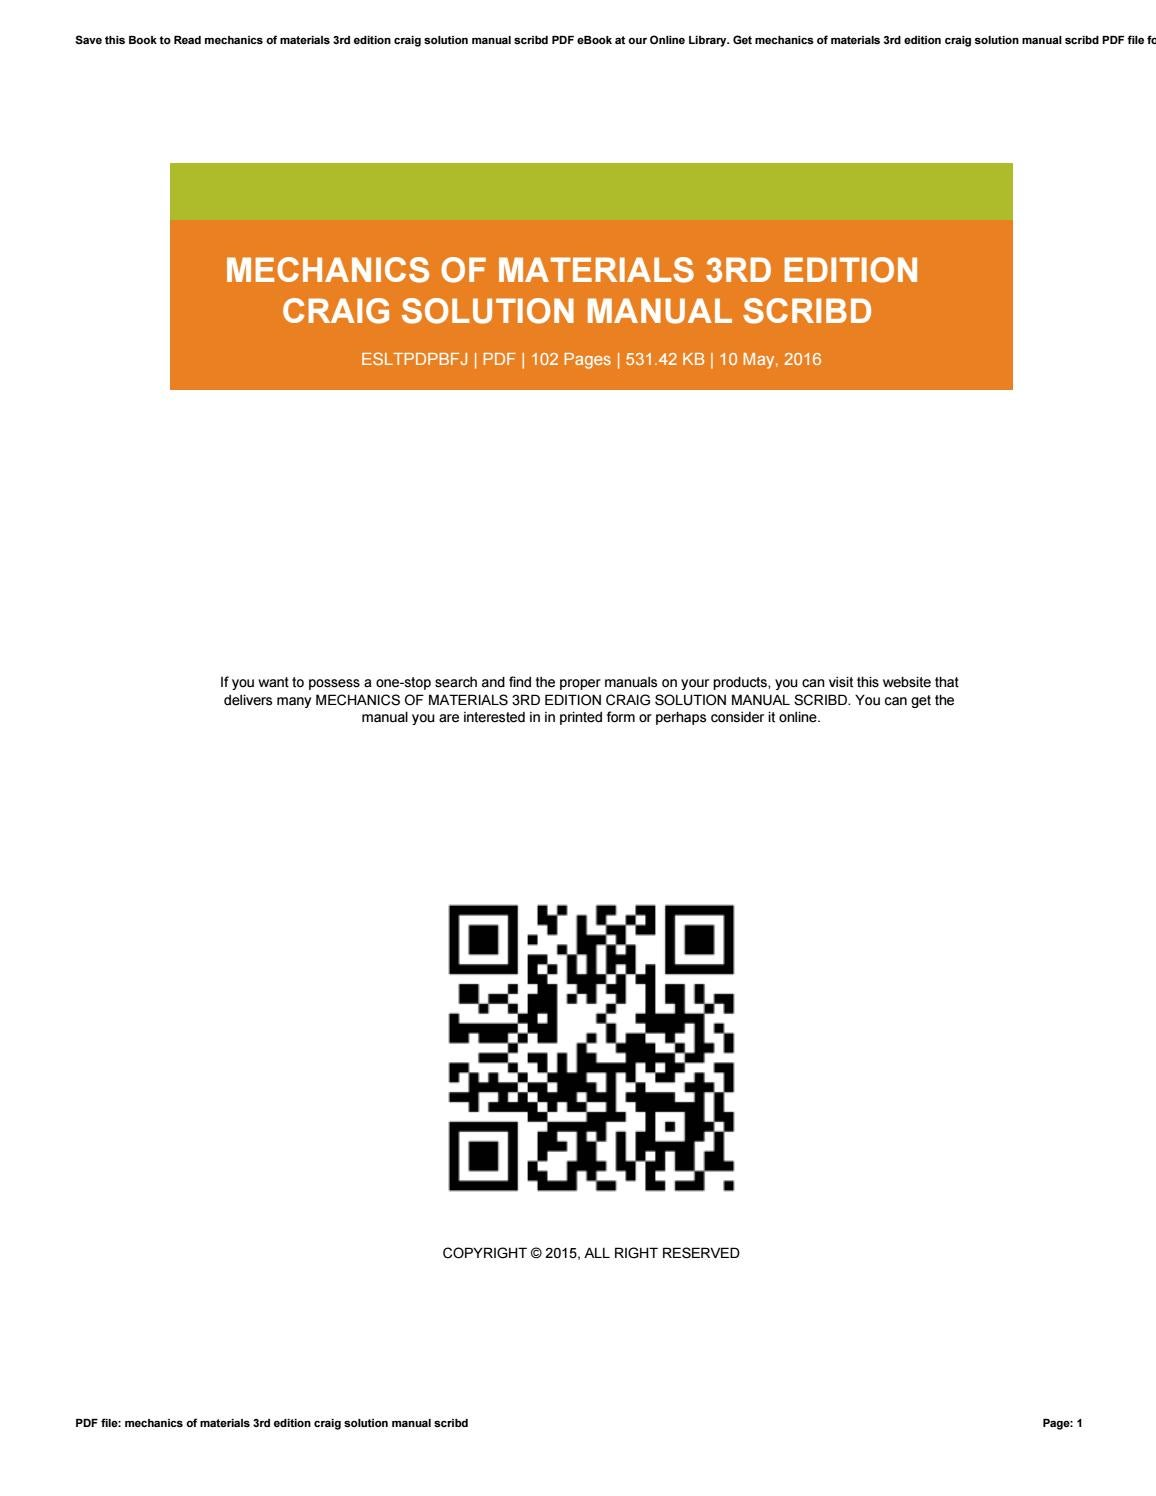 Mechanics of materials 3rd edition craig solution manual scribd by mechanics of materials 3rd edition craig solution manual scribd by jerrygraham4200 issuu fandeluxe Image collections